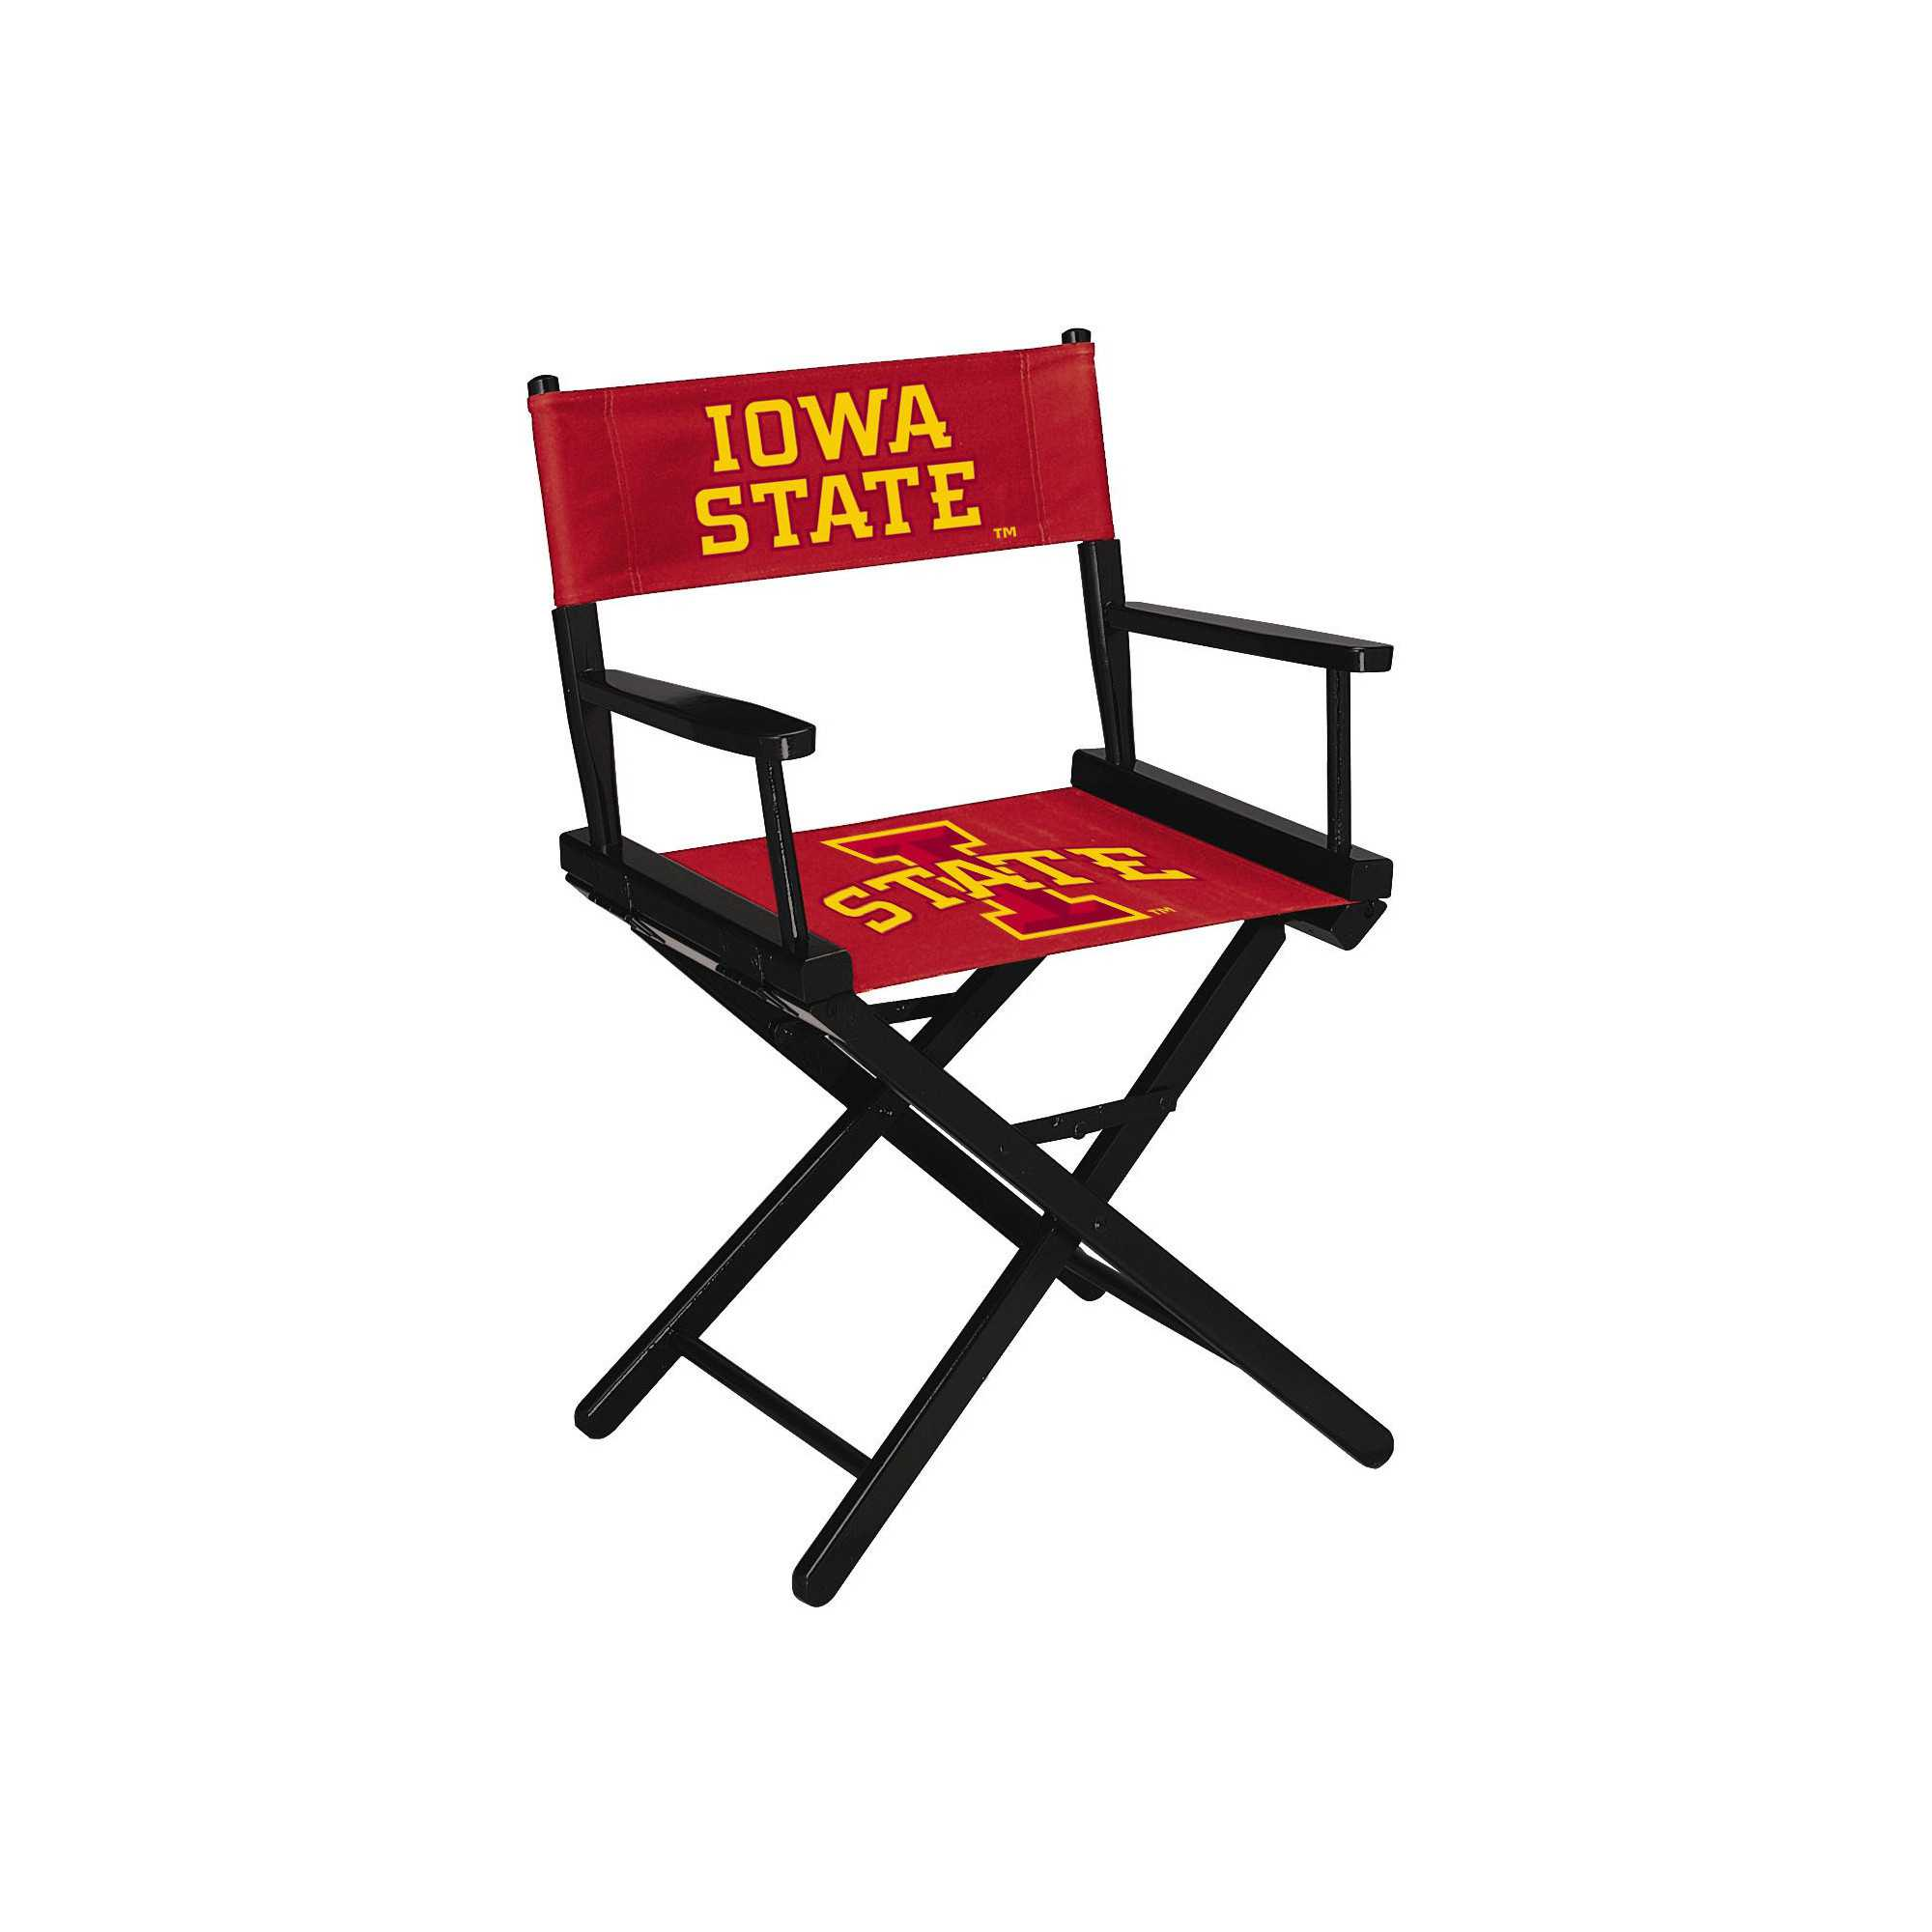 IOWA STATE UNIVERSITY DIRECTORS CHAIR-TABLE HEIGHT